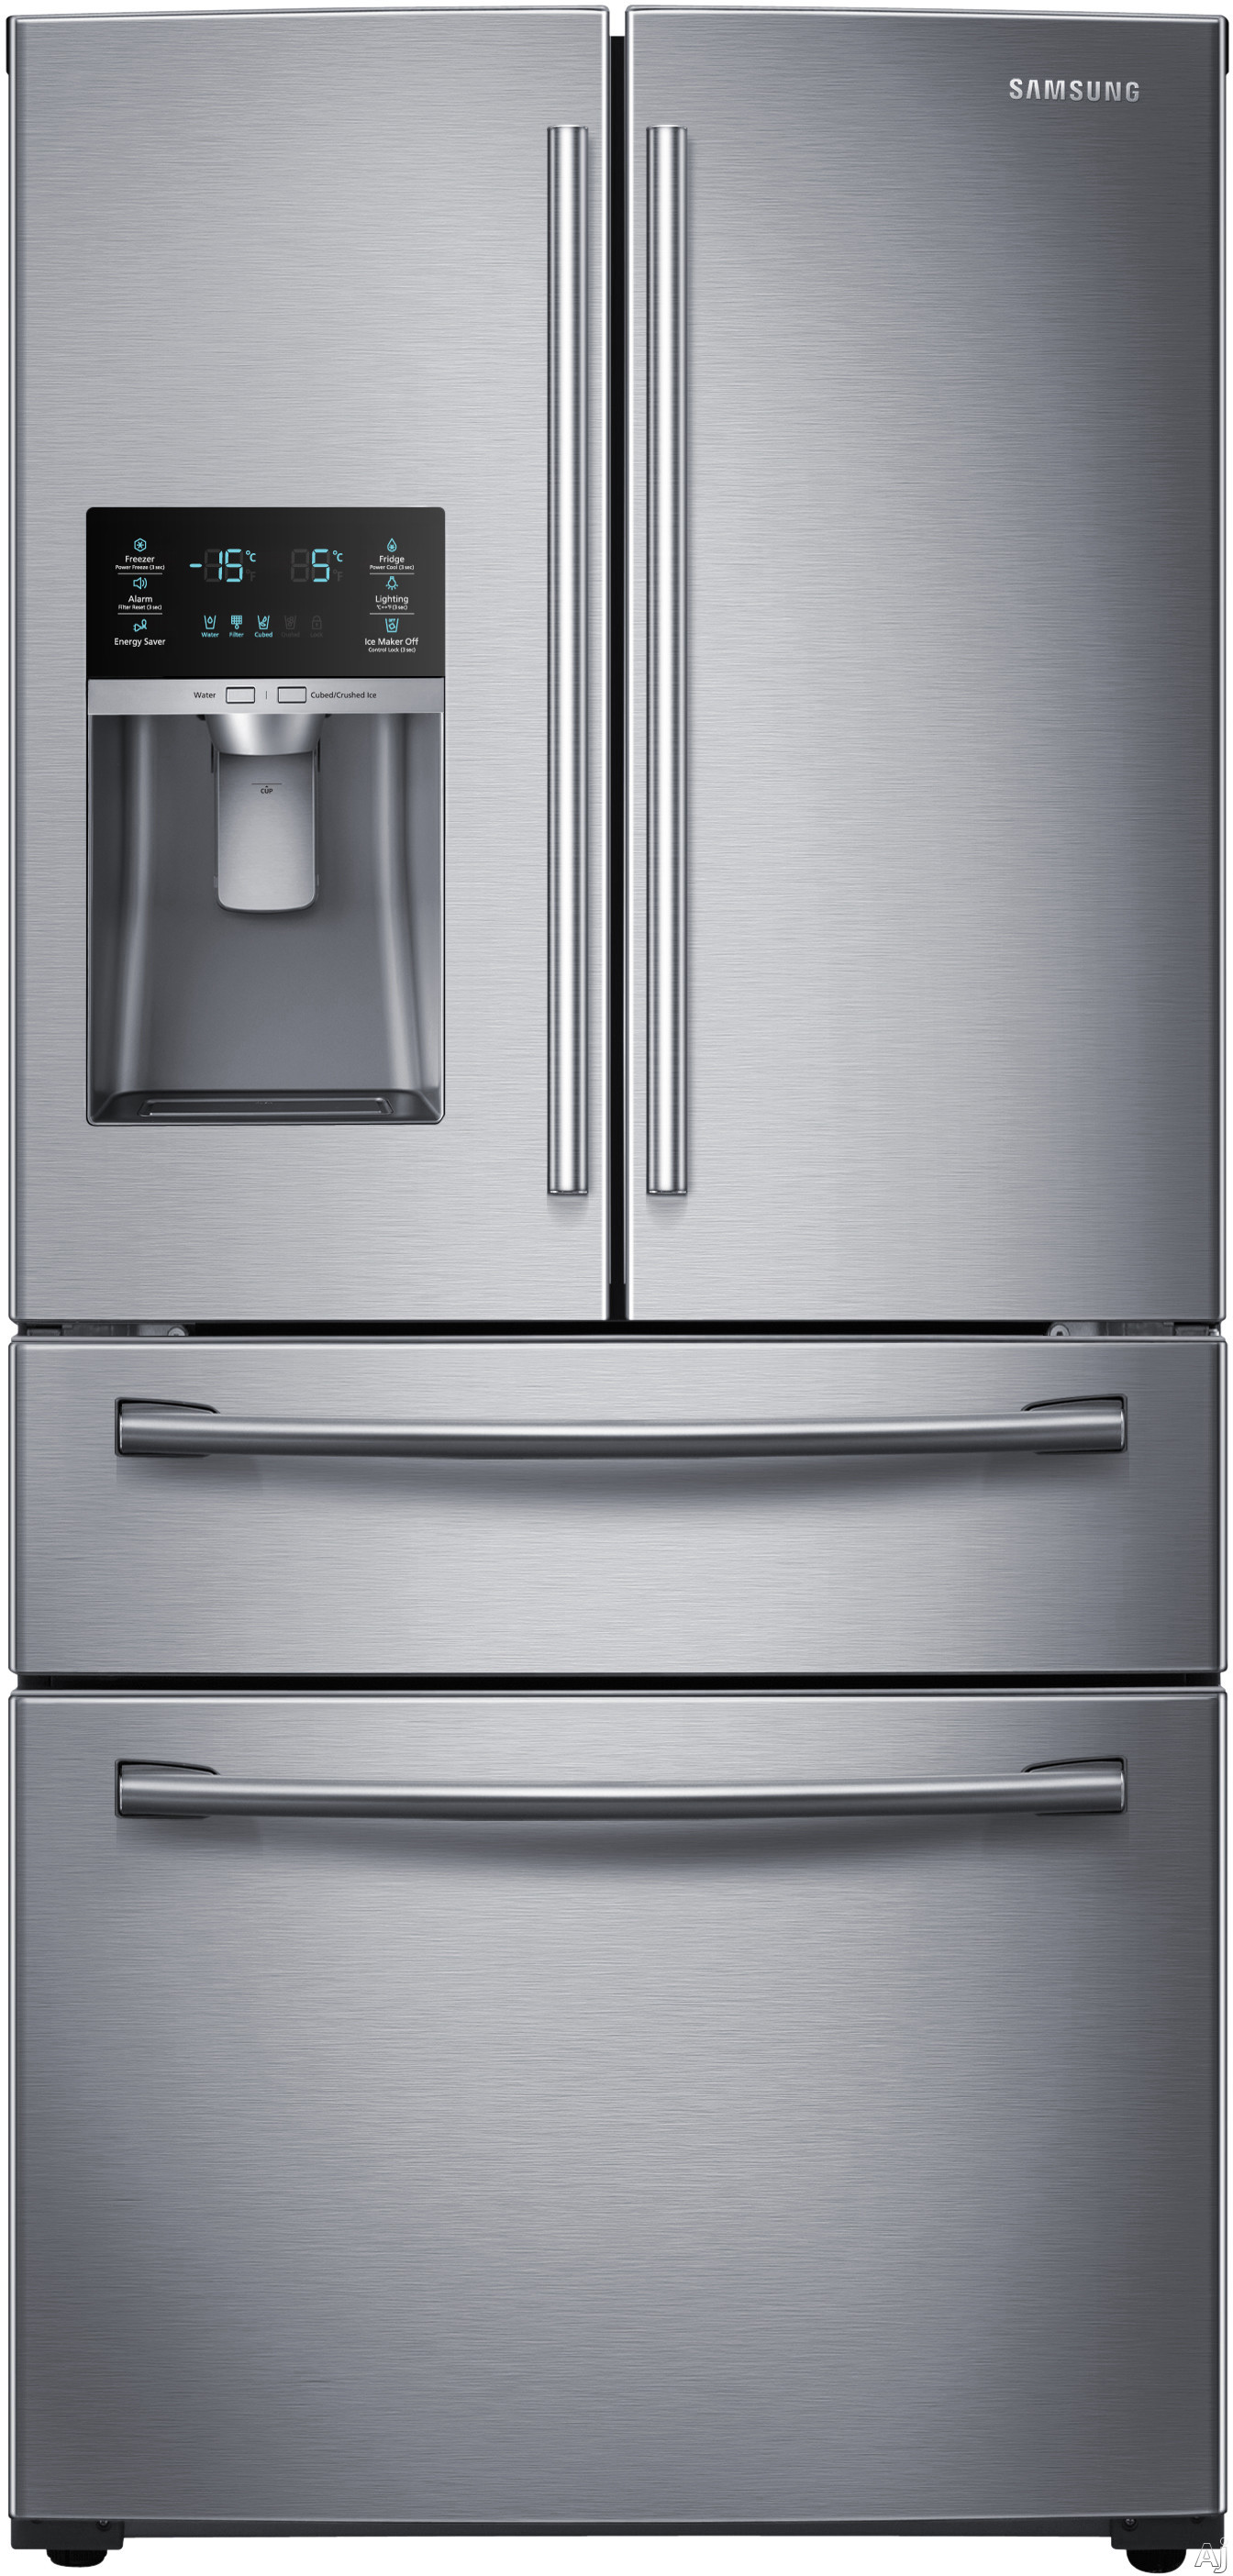 Samsung RF28HDEDBSR French Door Refrigerator Review